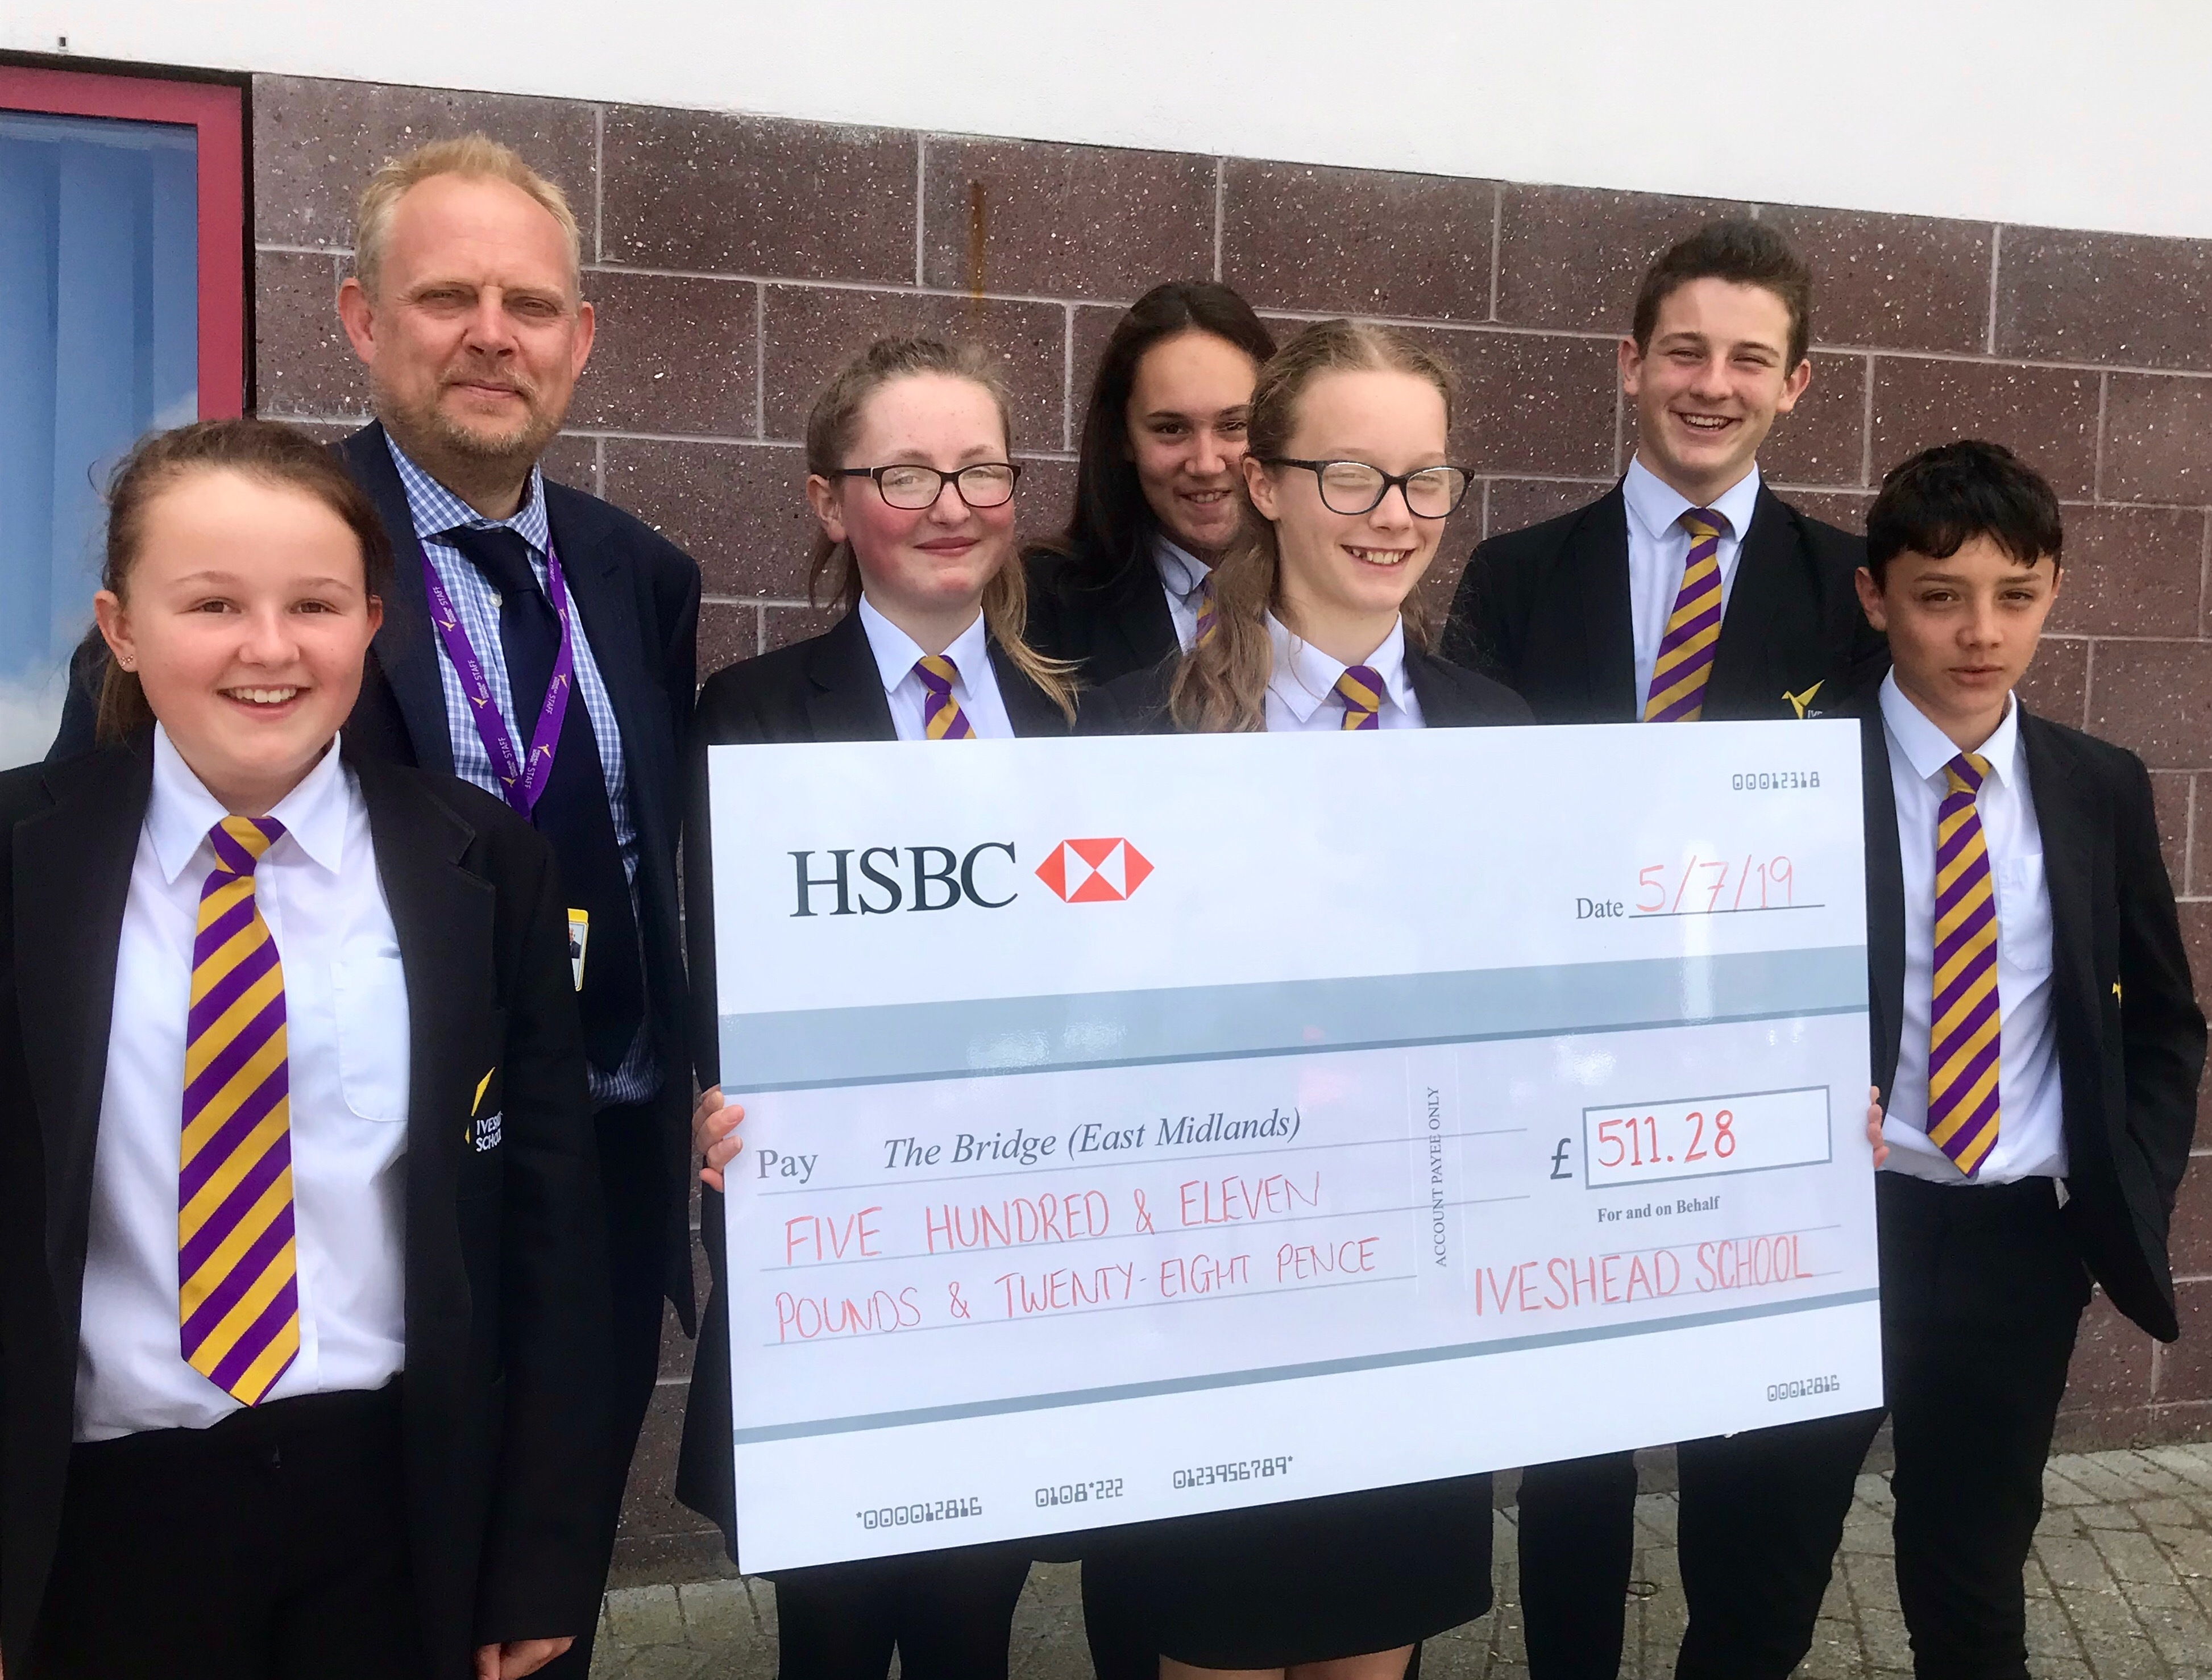 Students raise over £500 for The Bridge